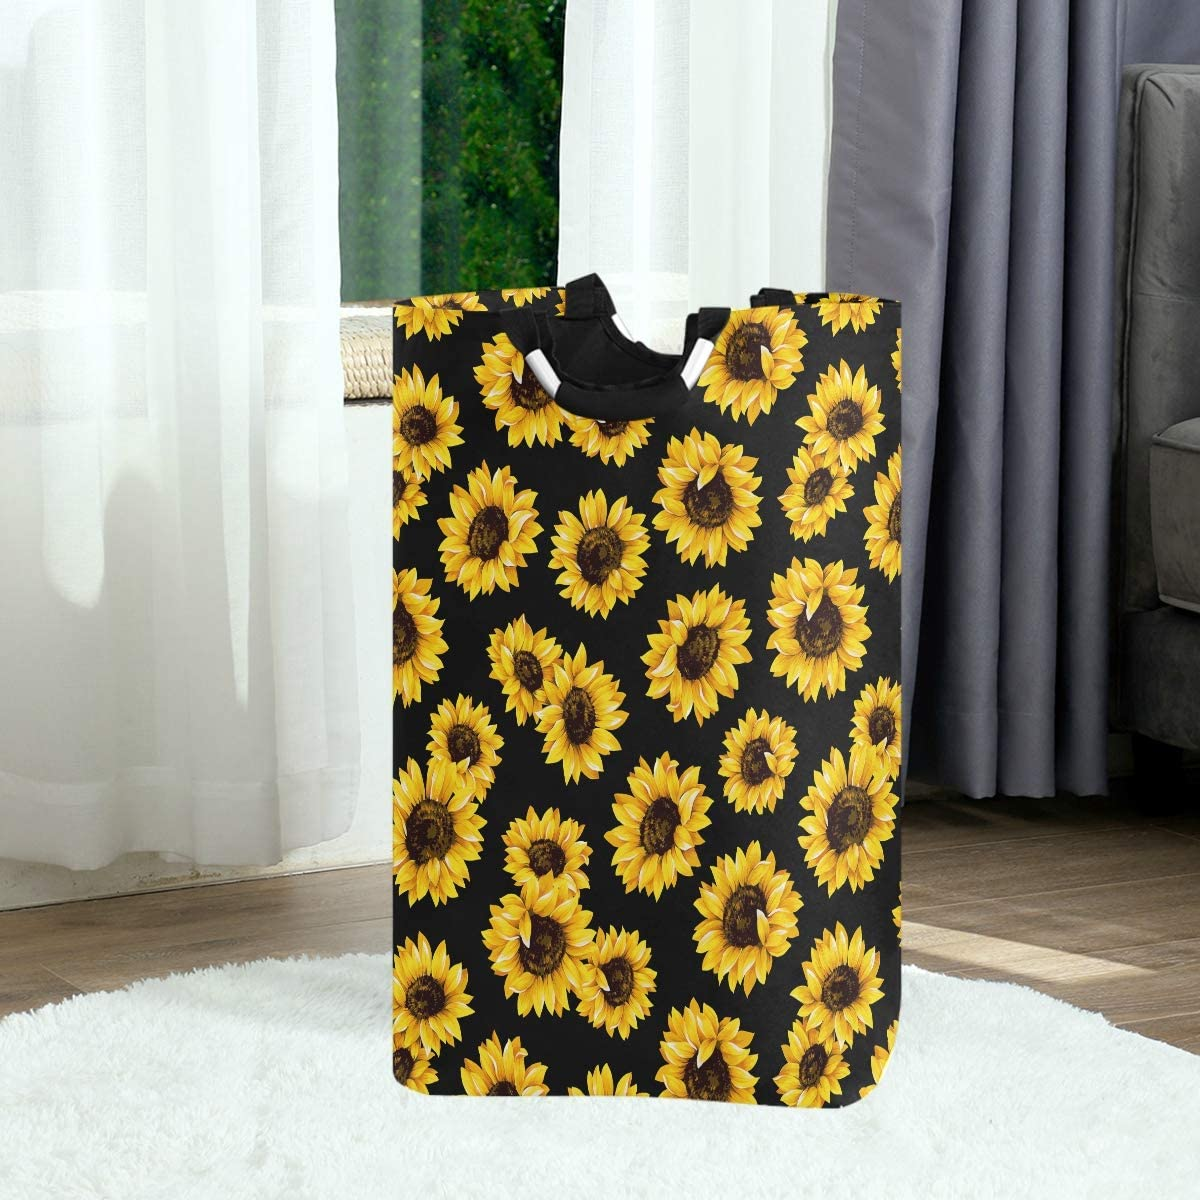 Pfrewn Sunflowers Large Laundry Basket Retro Floral Yellow Flowers Collapsible Laundry Hamper with Handles Waterproof Durable Clothes Washing Bin Dirty Baskets Storage for Home College Dorm Bathroom